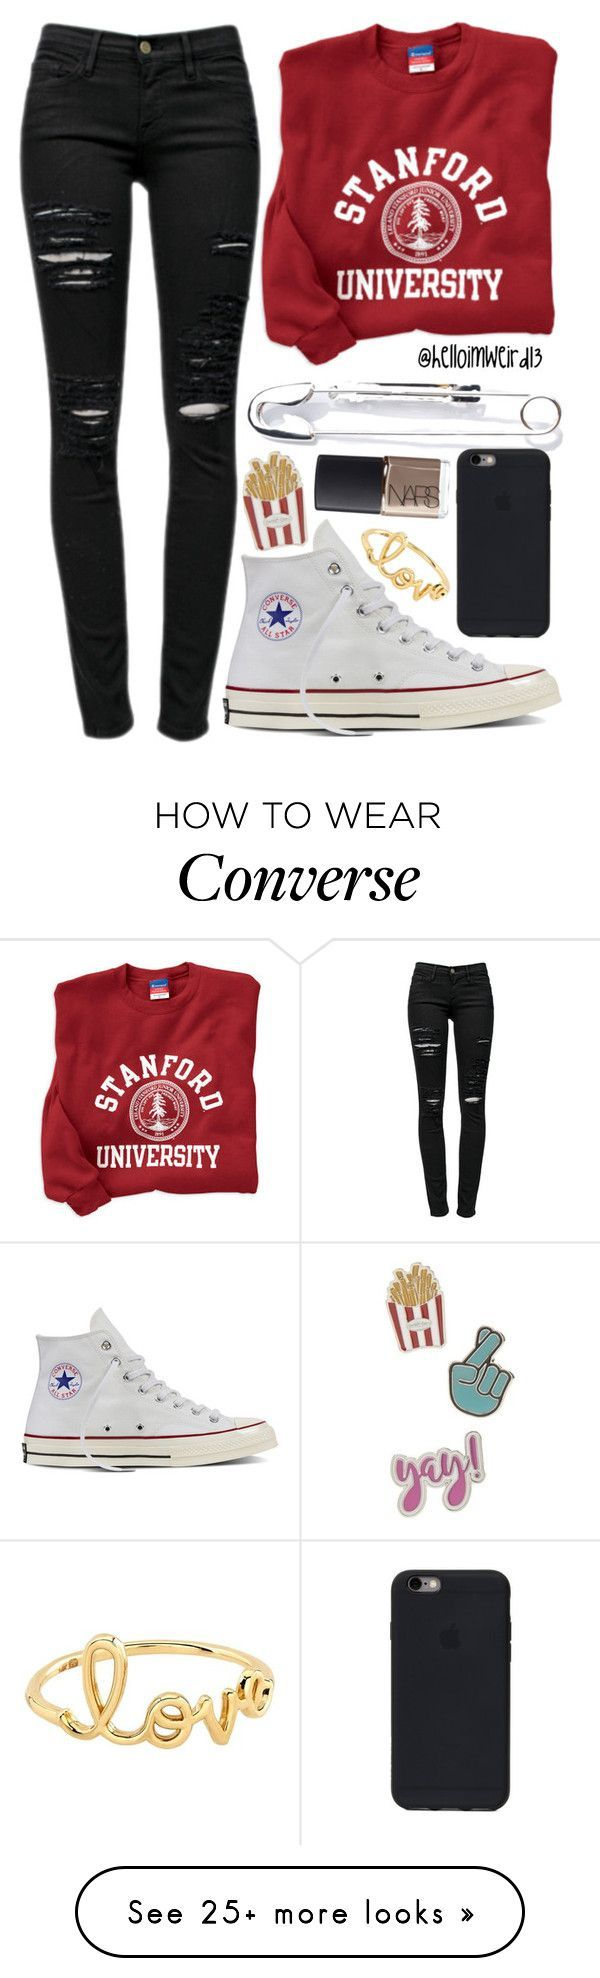 """shine bright"" by helloimweird13 on Polyvore featuring Frame, Cheap Monday, Converse, Red Camel, NARS Cosmetics and Sydney Evan"